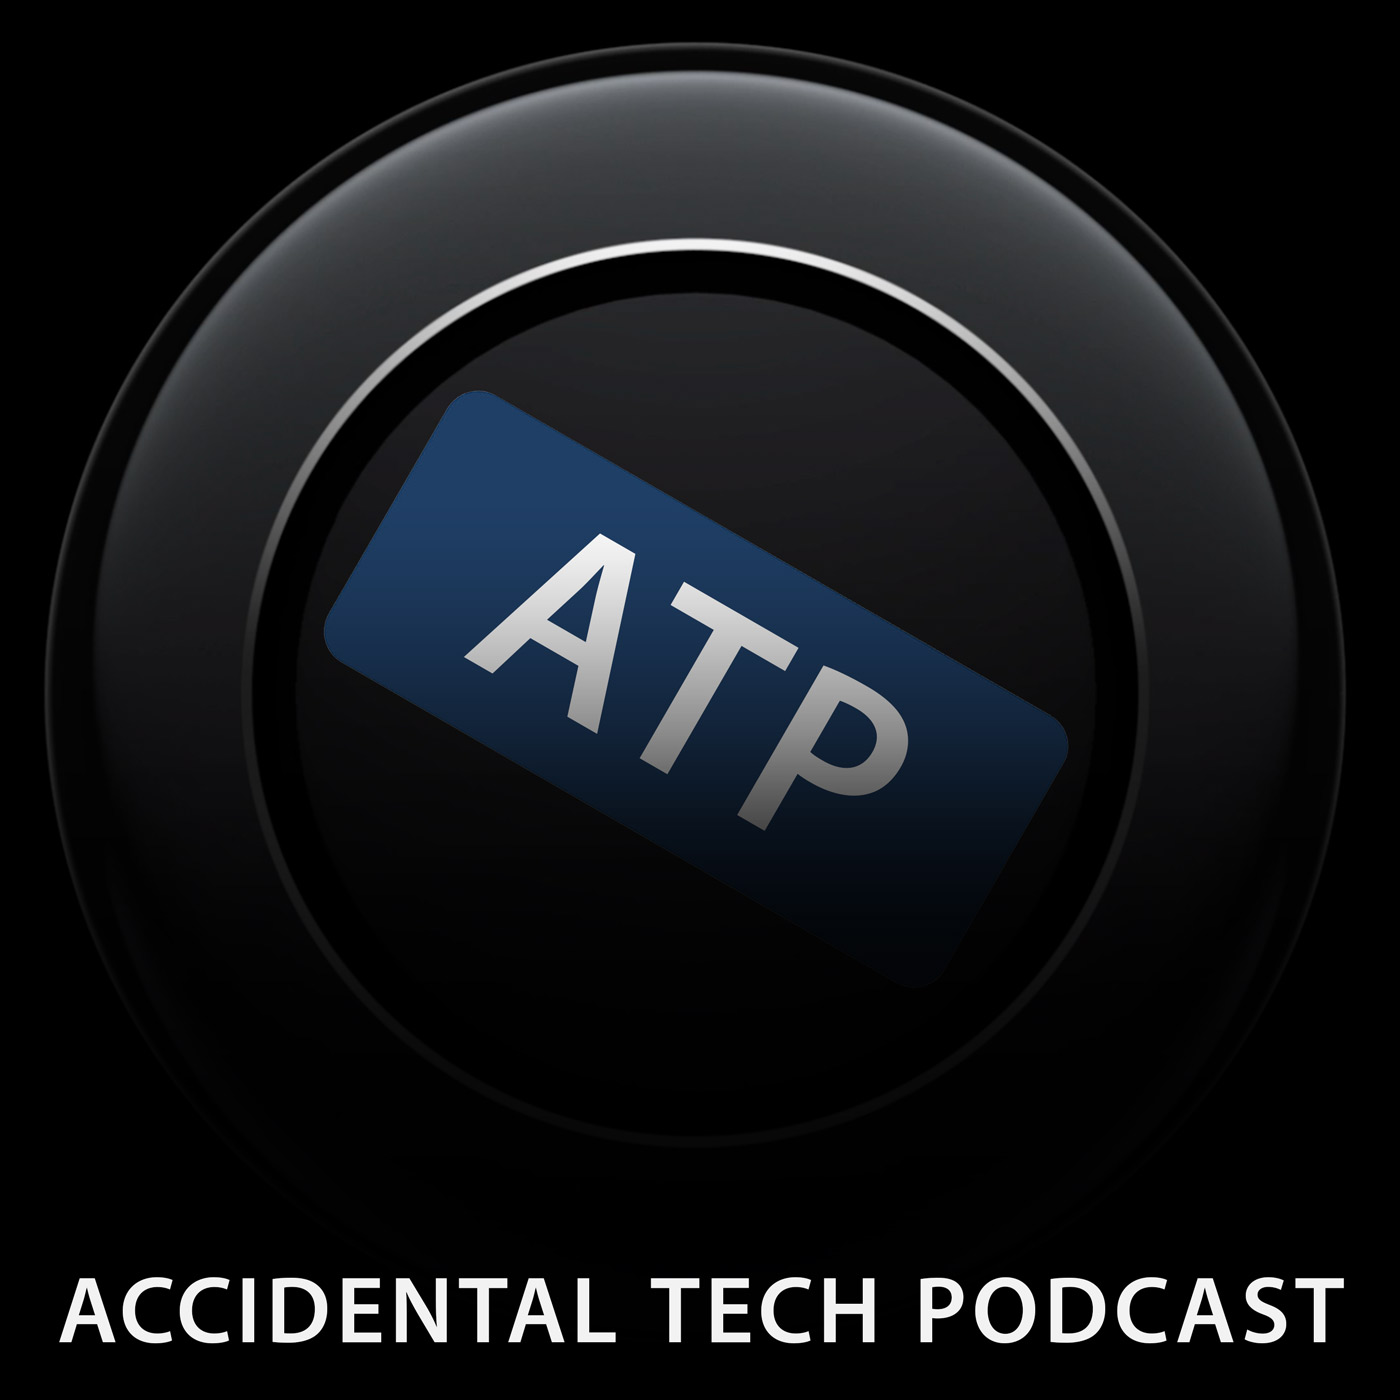 Accidental Tech podcast - 8 best tech podcasts - Plesk